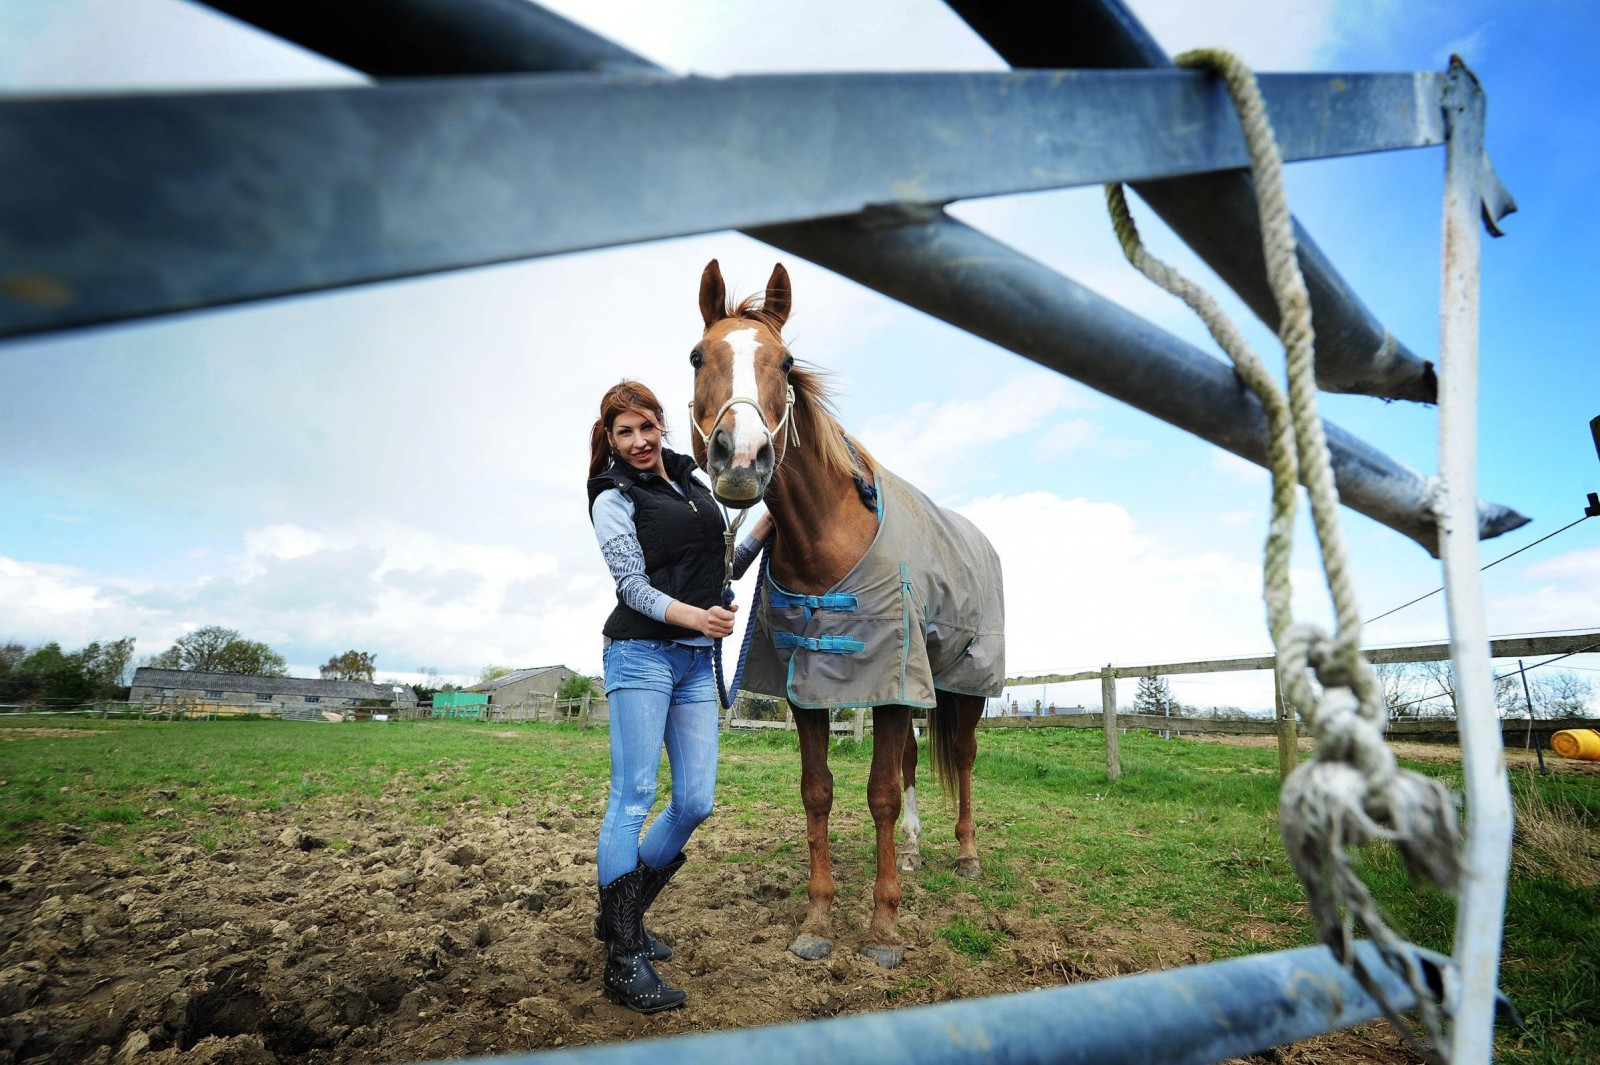 You wont believe why this young mare had to be rescued by firefighters